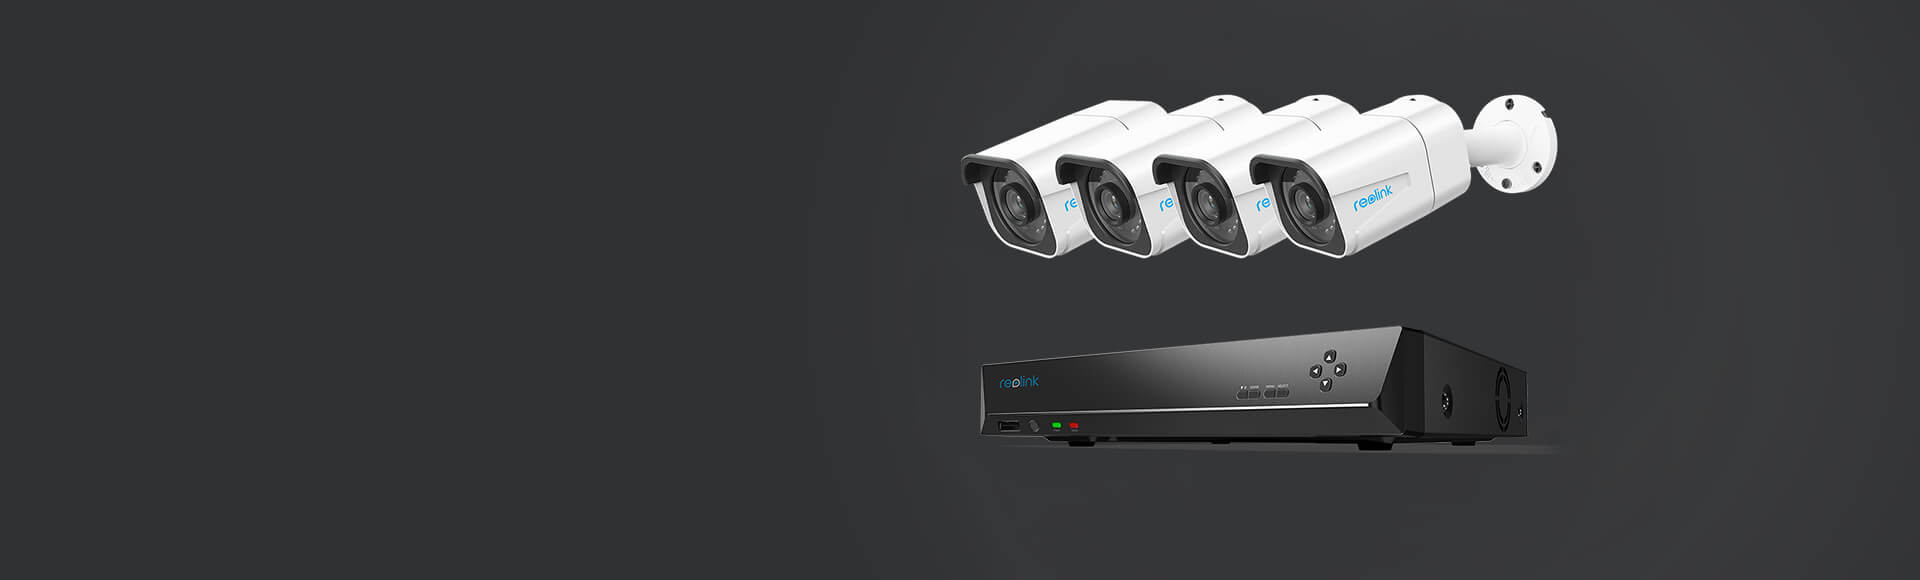 RLK8-800B4 4K 8-Channel PoE Security Camera System